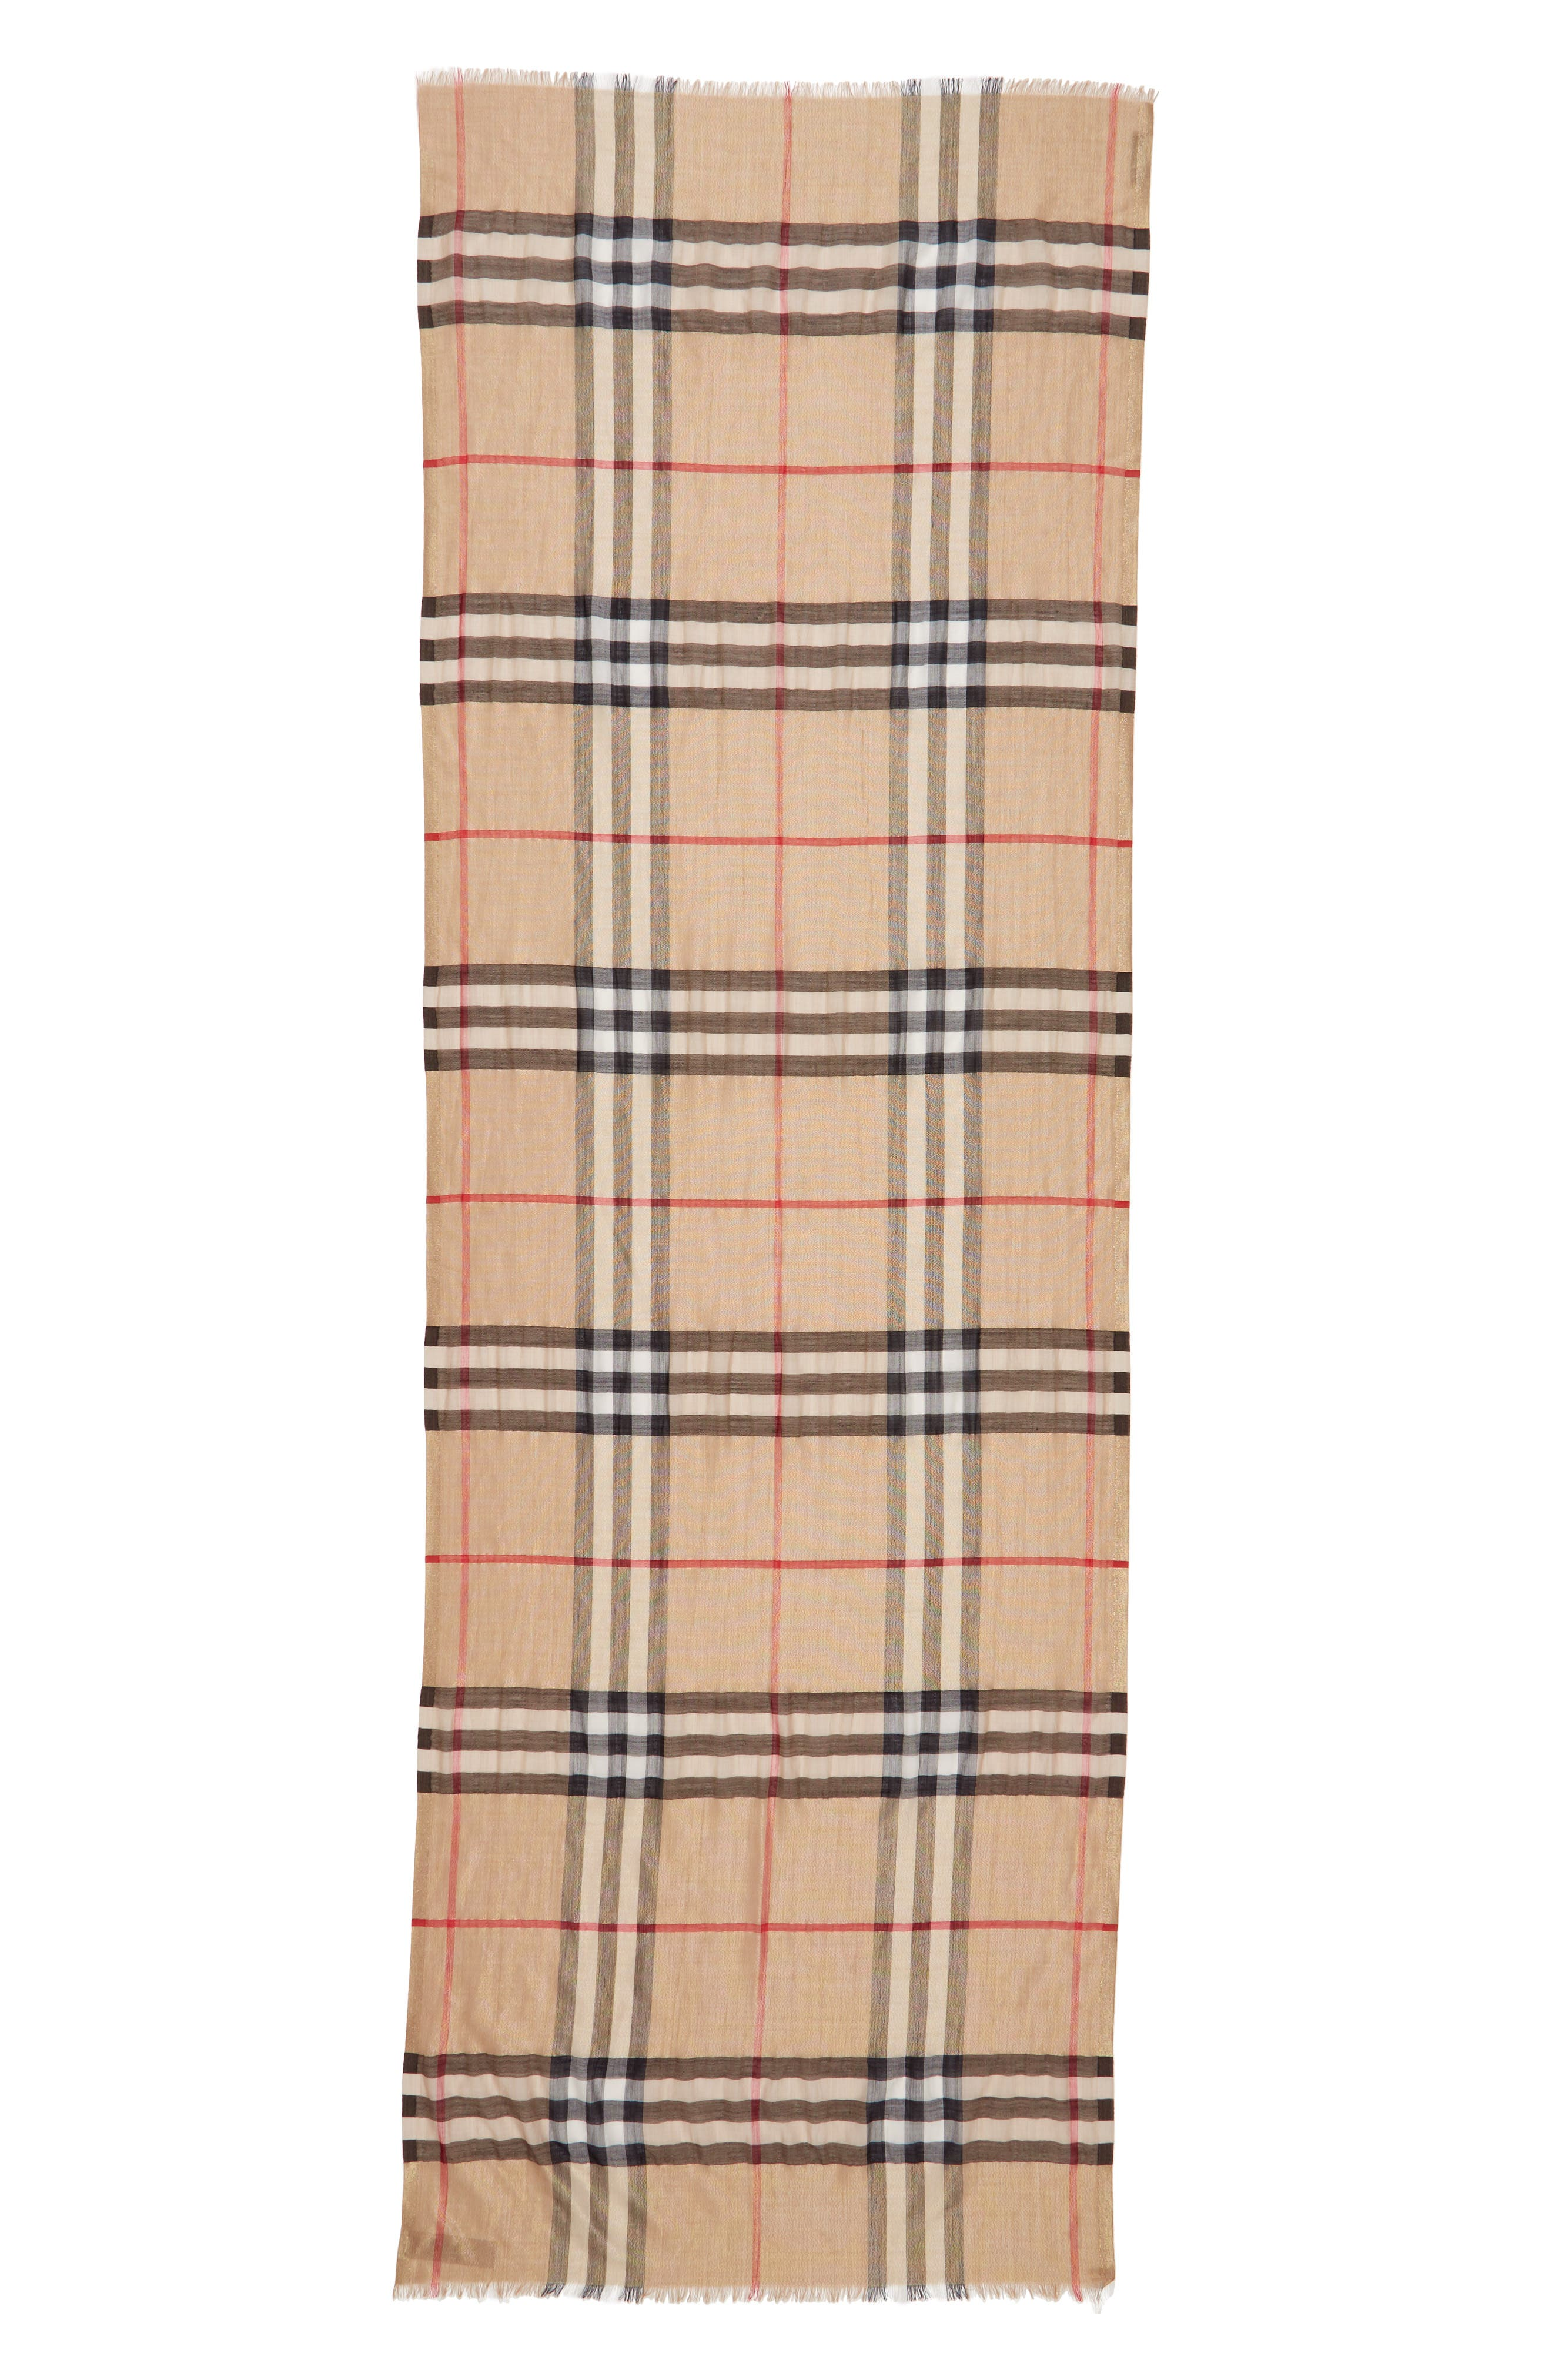 BURBERRY,                             Giant Check Scarf,                             Alternate thumbnail 4, color,                             250